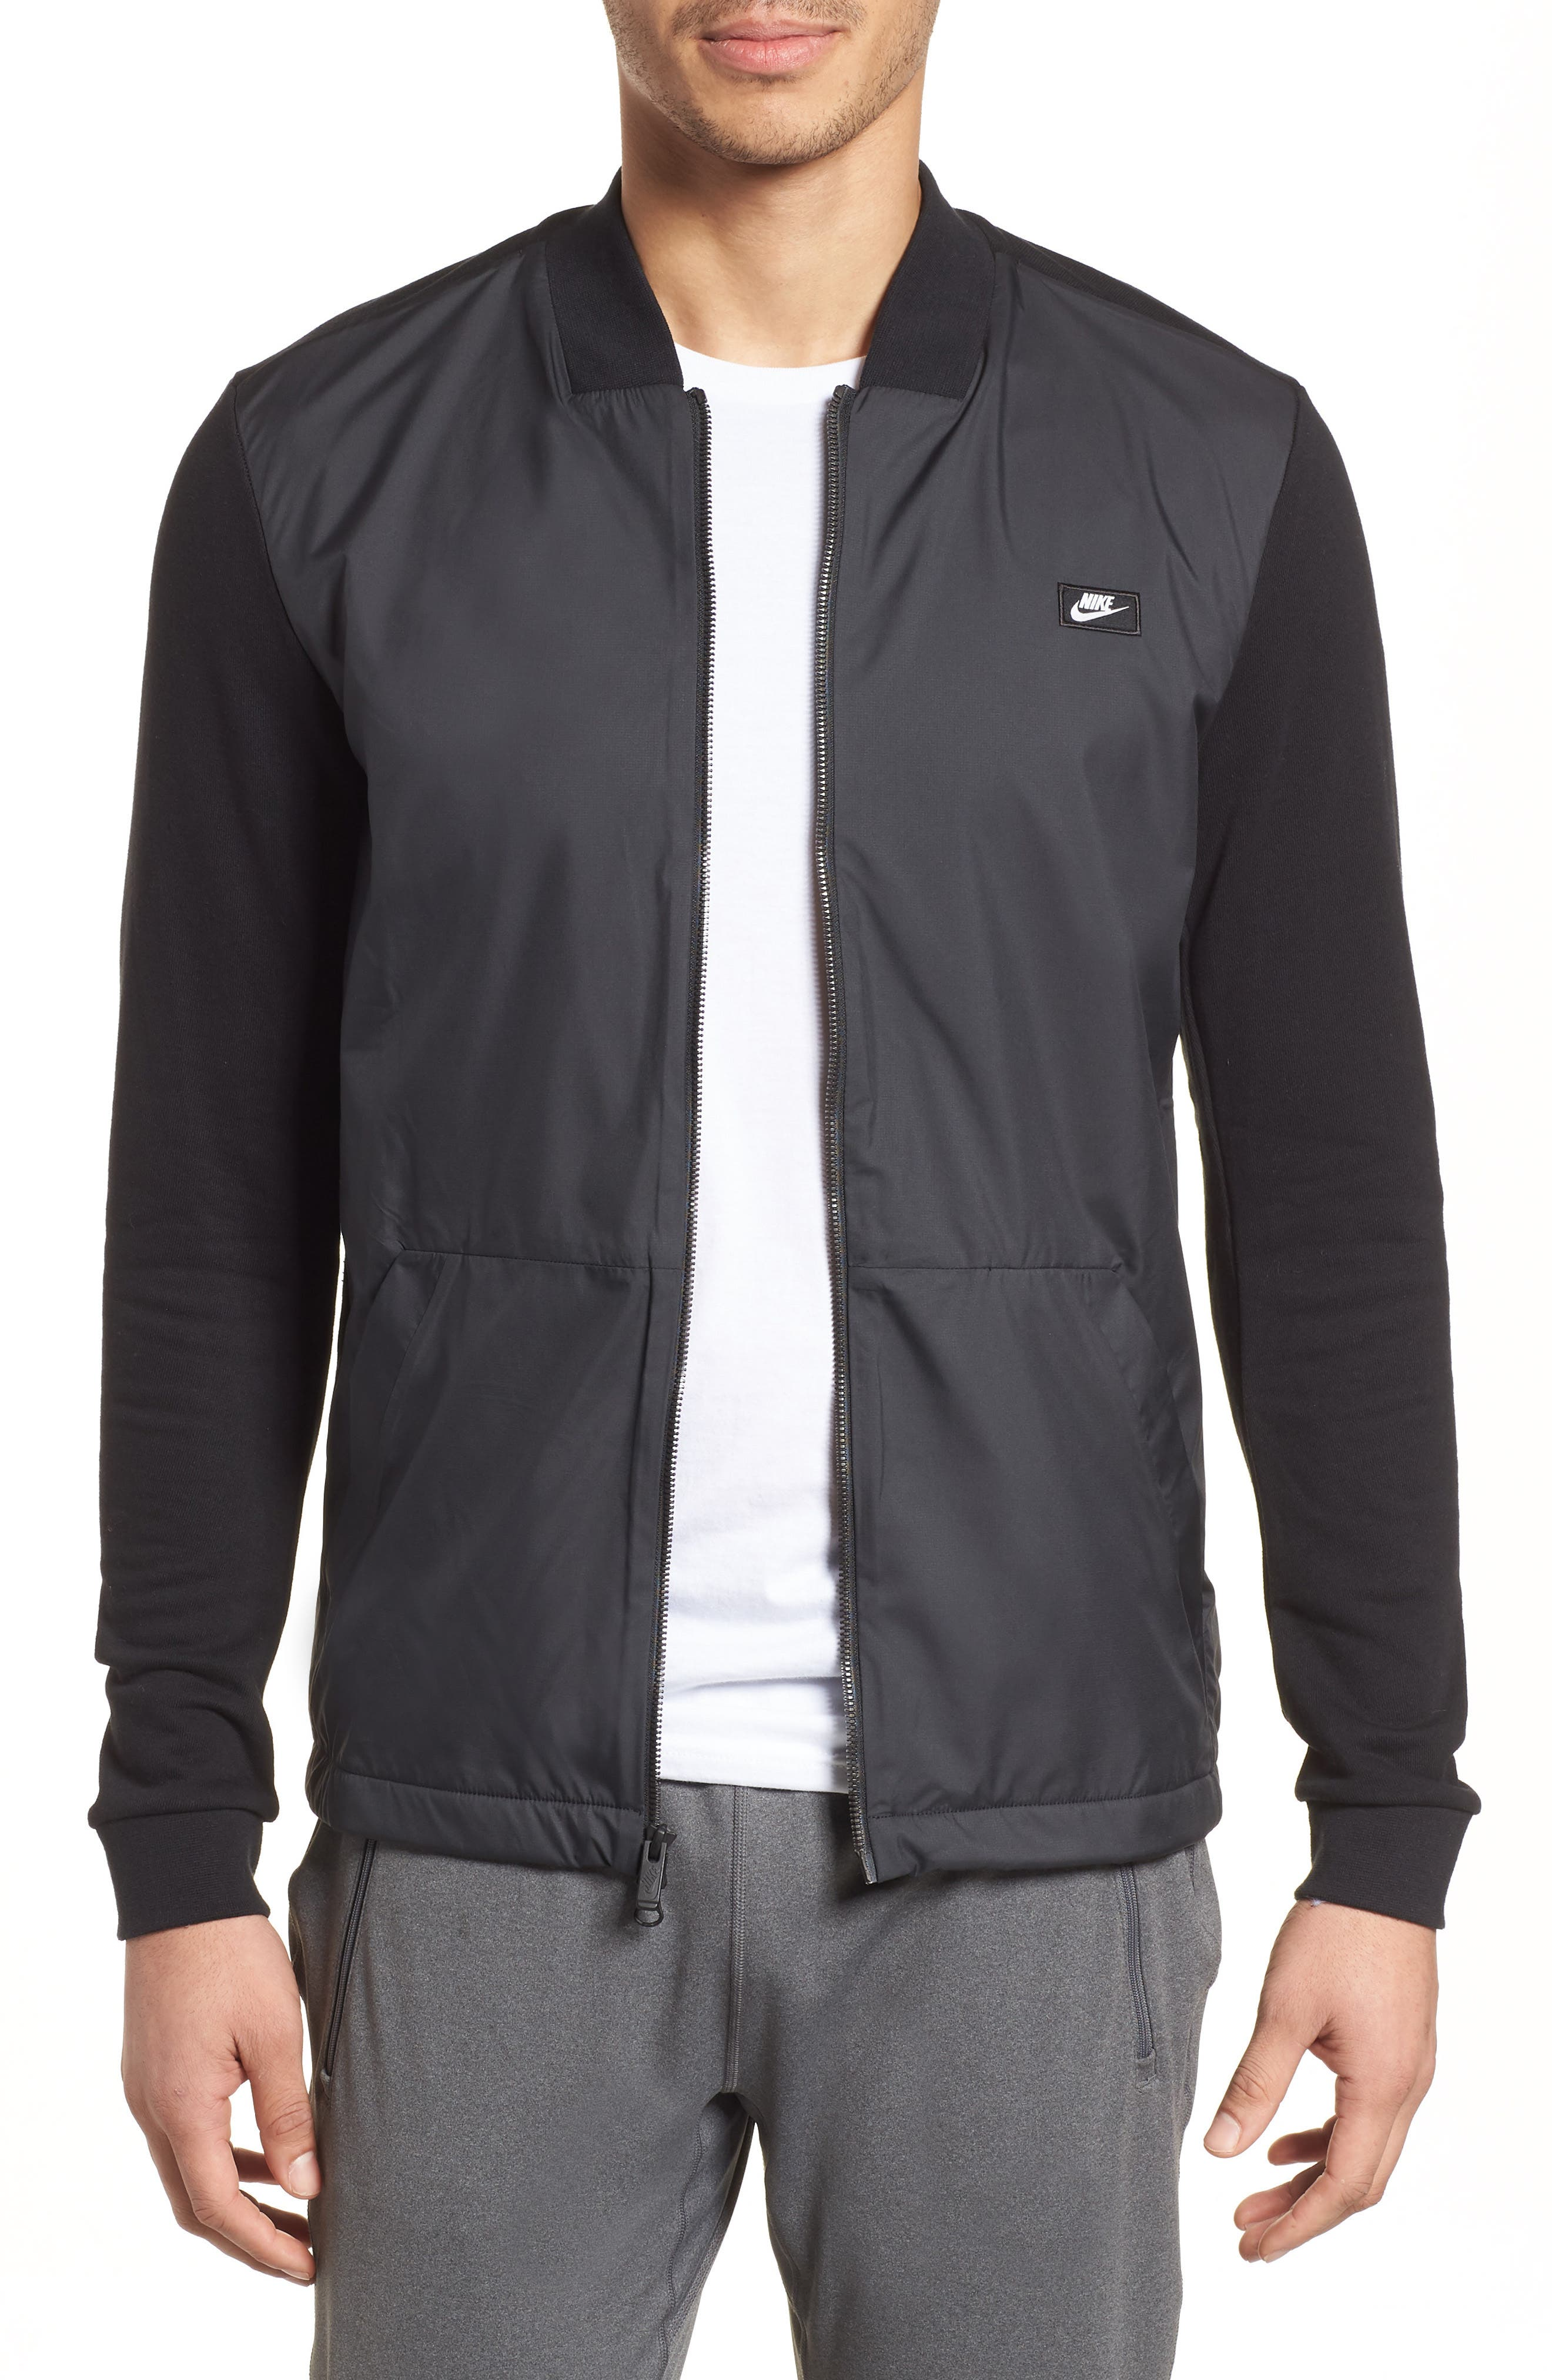 NSW Modern Track Jacket,                             Main thumbnail 1, color,                             010